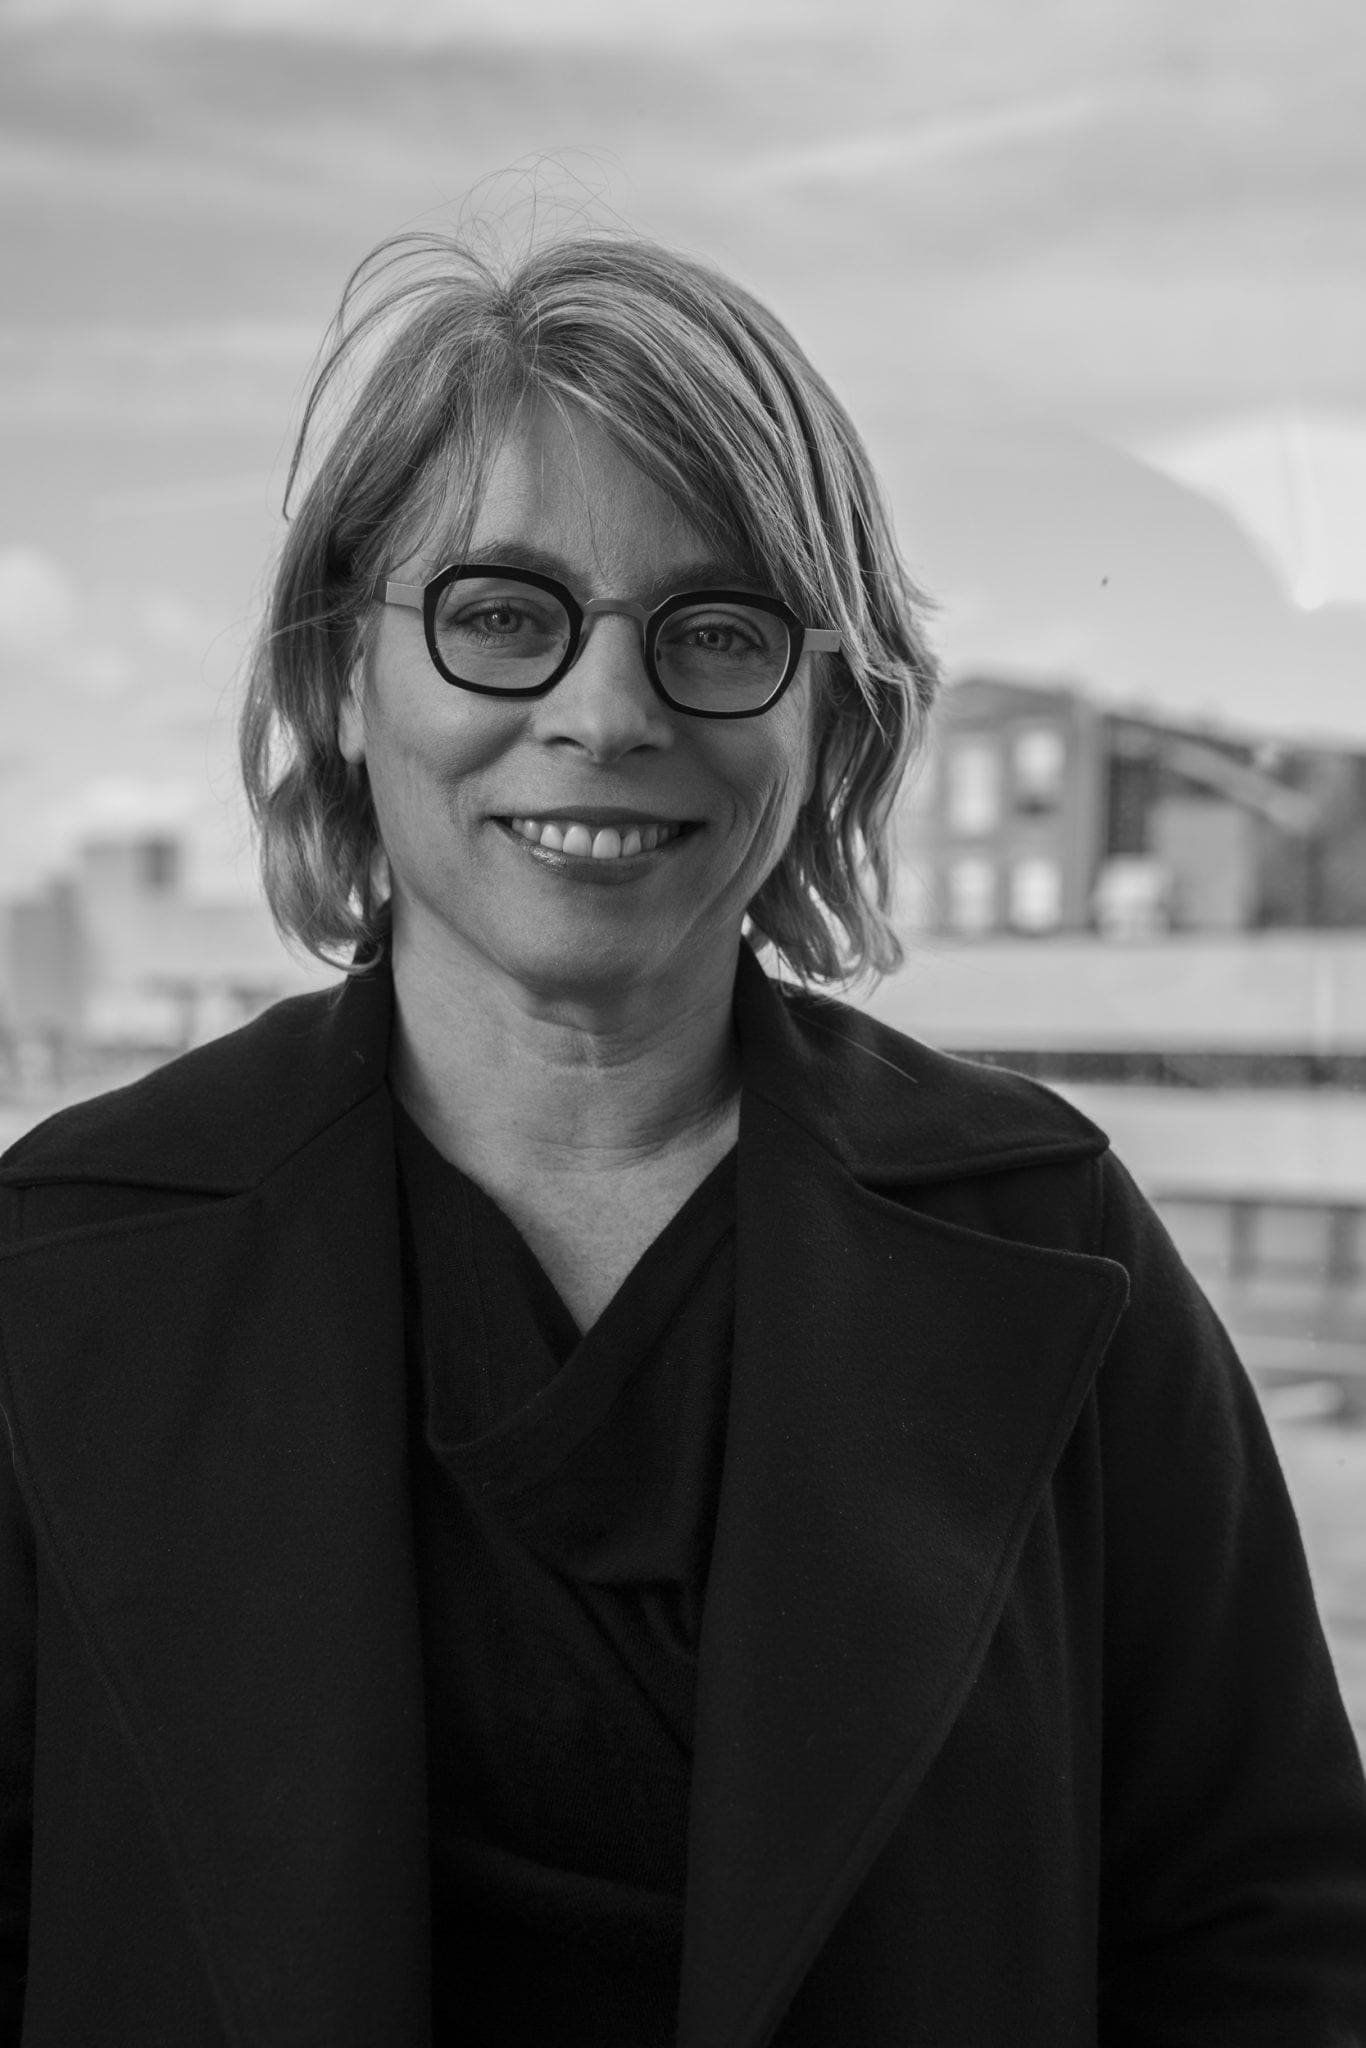 Portrait of Jill Lepore